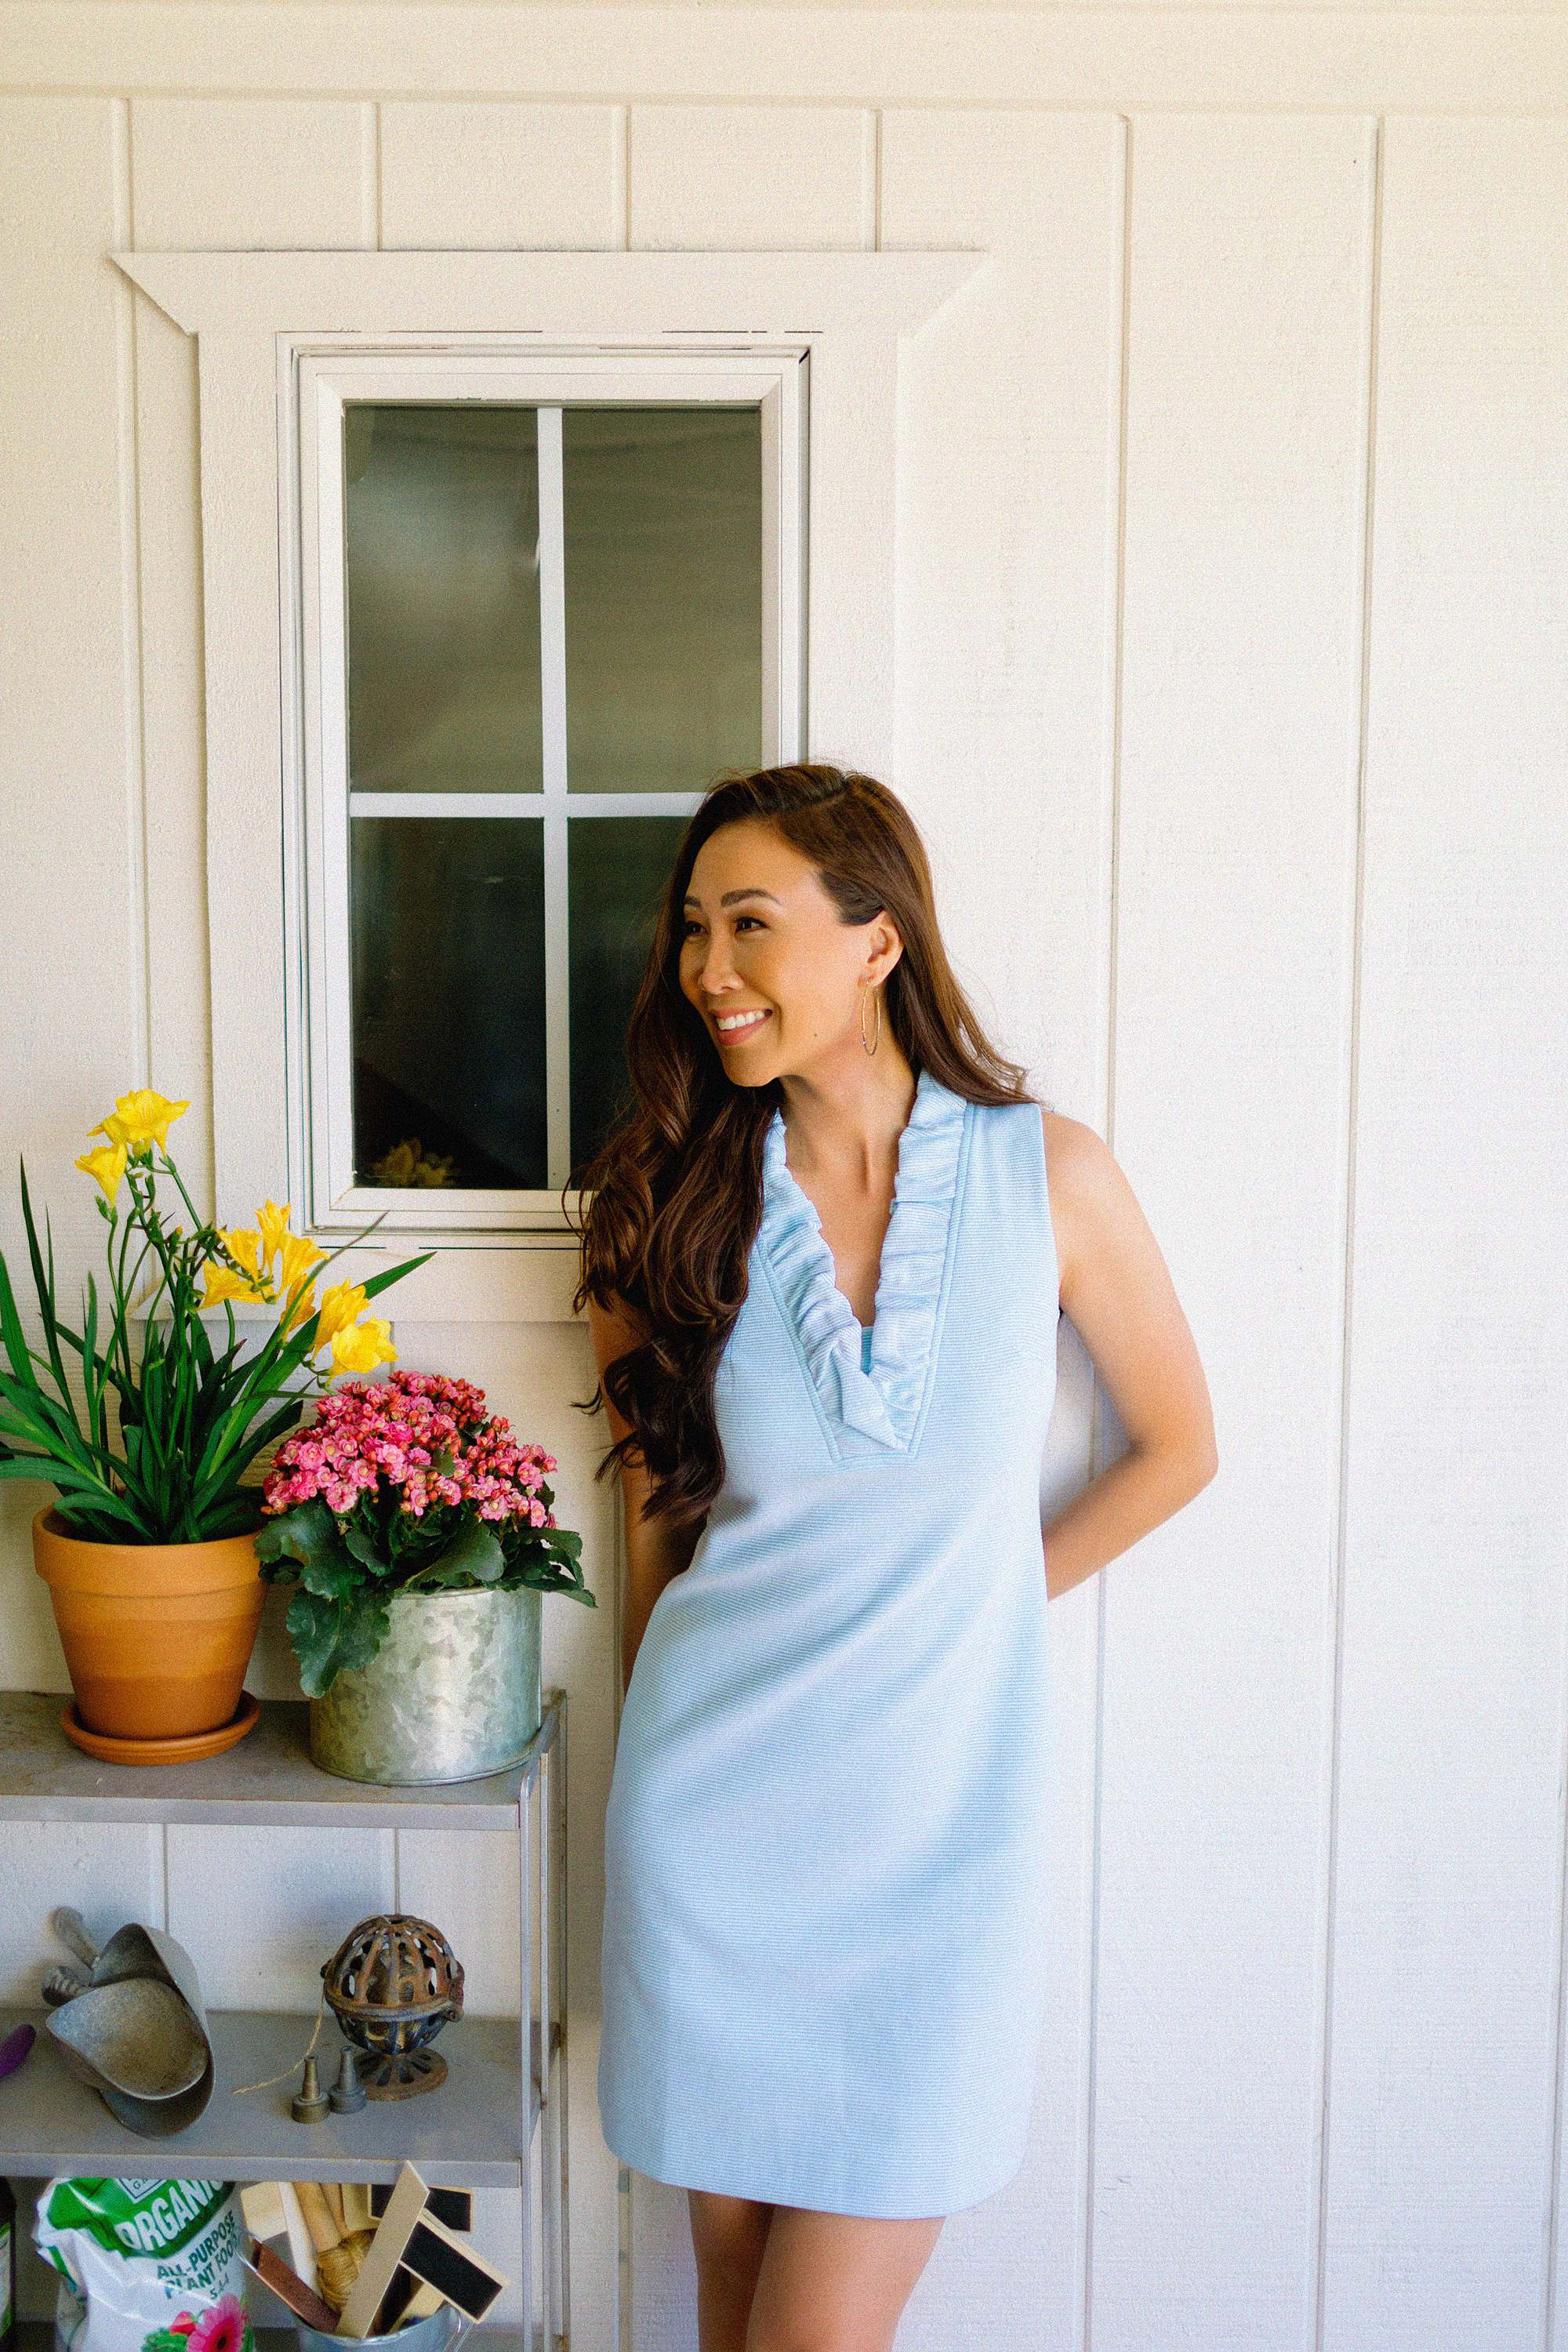 Lilly Pulitzer TISBURY SHIFT DRESS ruffle blue spring dress on blogger in front of black gate going into garden